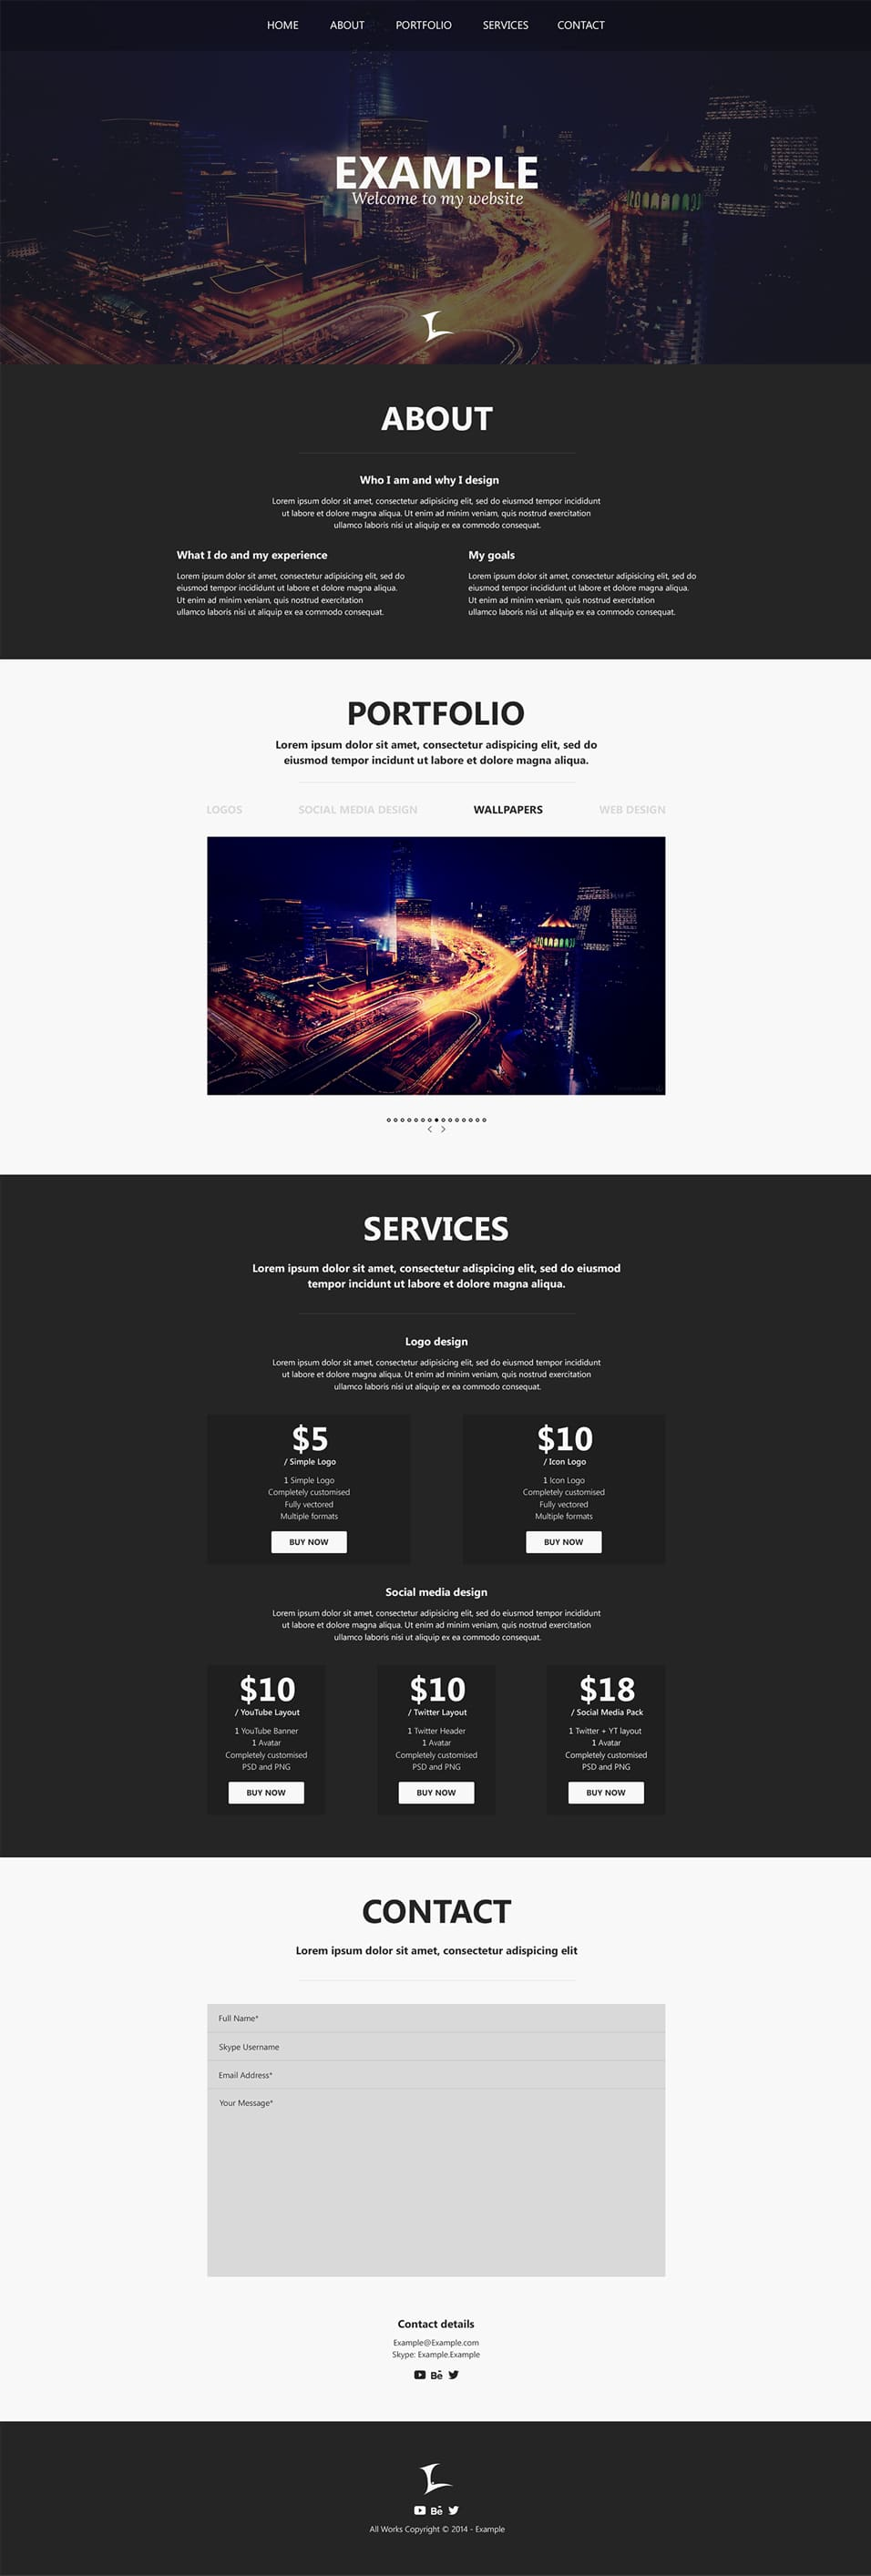 Free One-Page Portfolio Website Template PSD